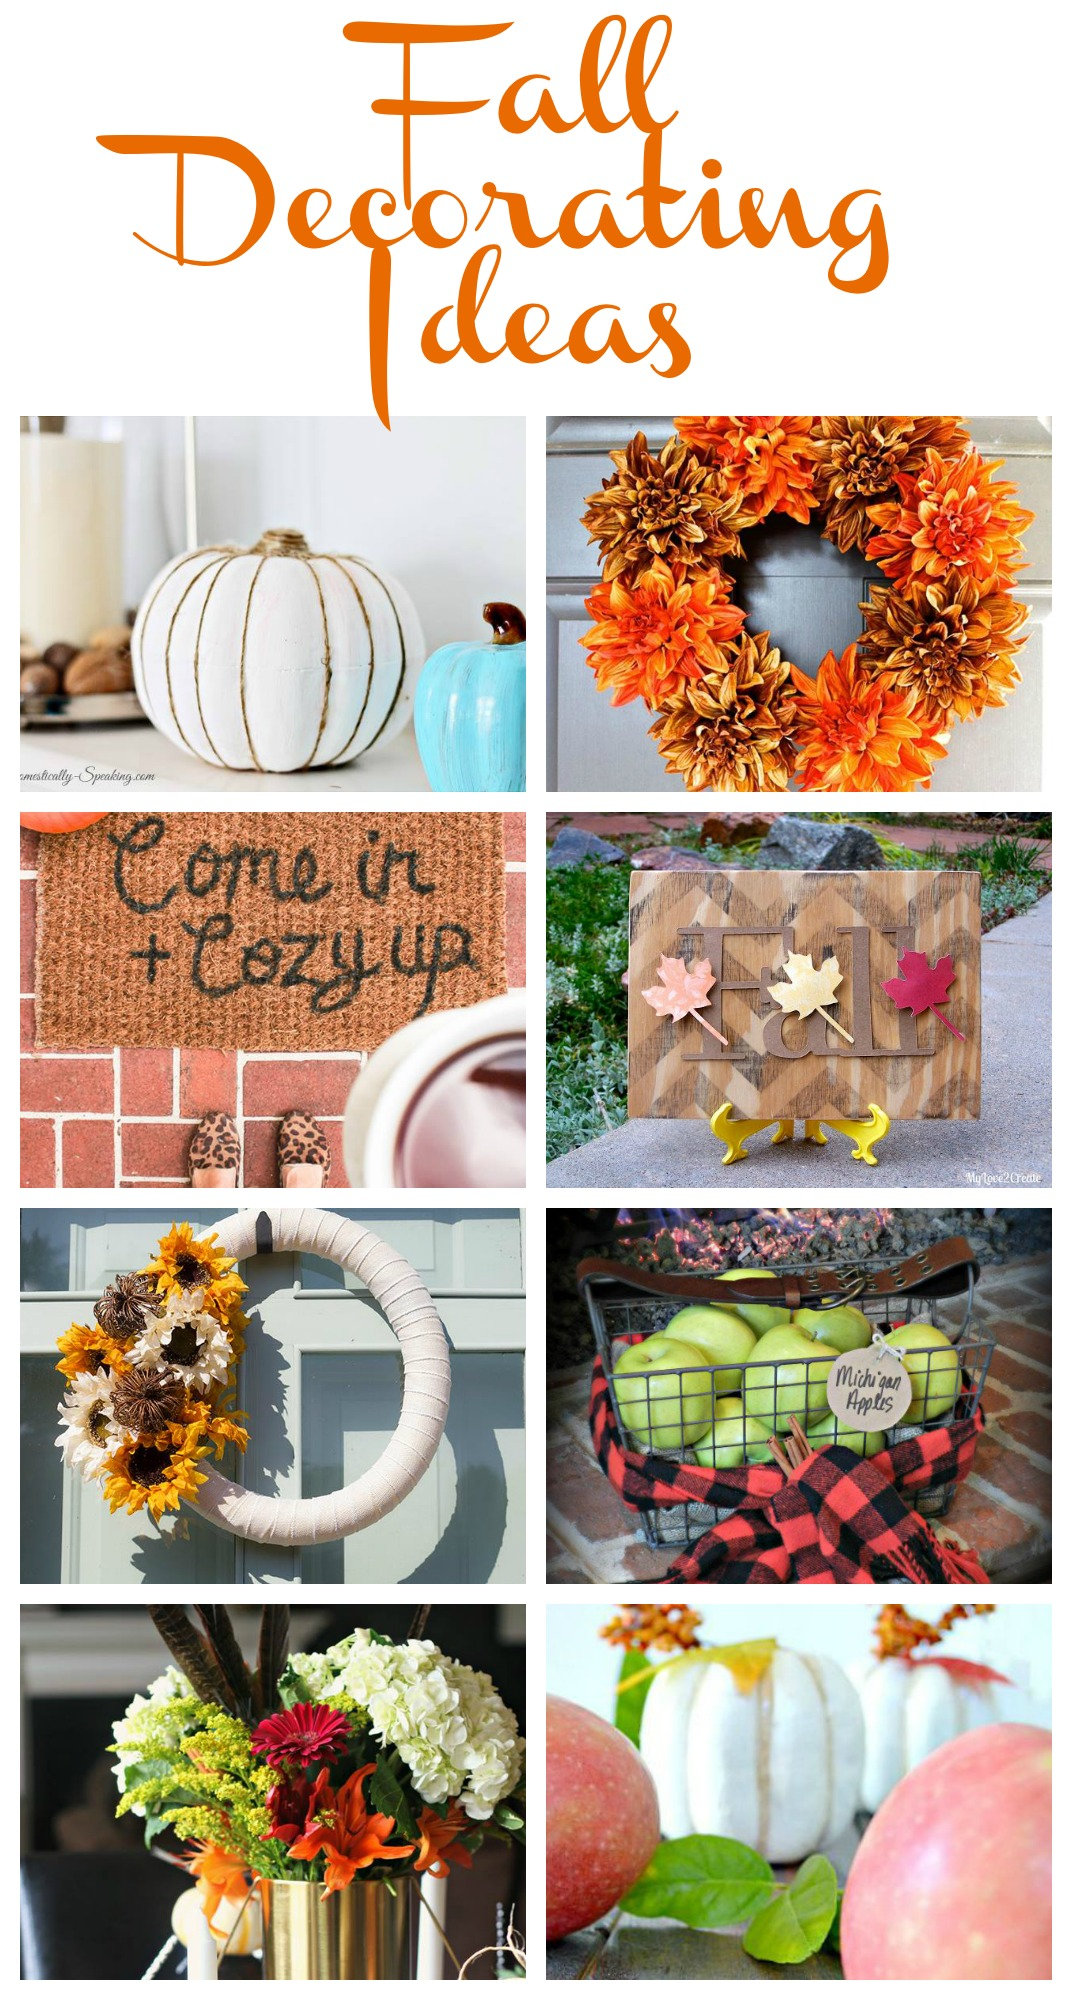 Fall Decor To Make Fall Decorating Ideas My Uncommon Slice Of Suburbia